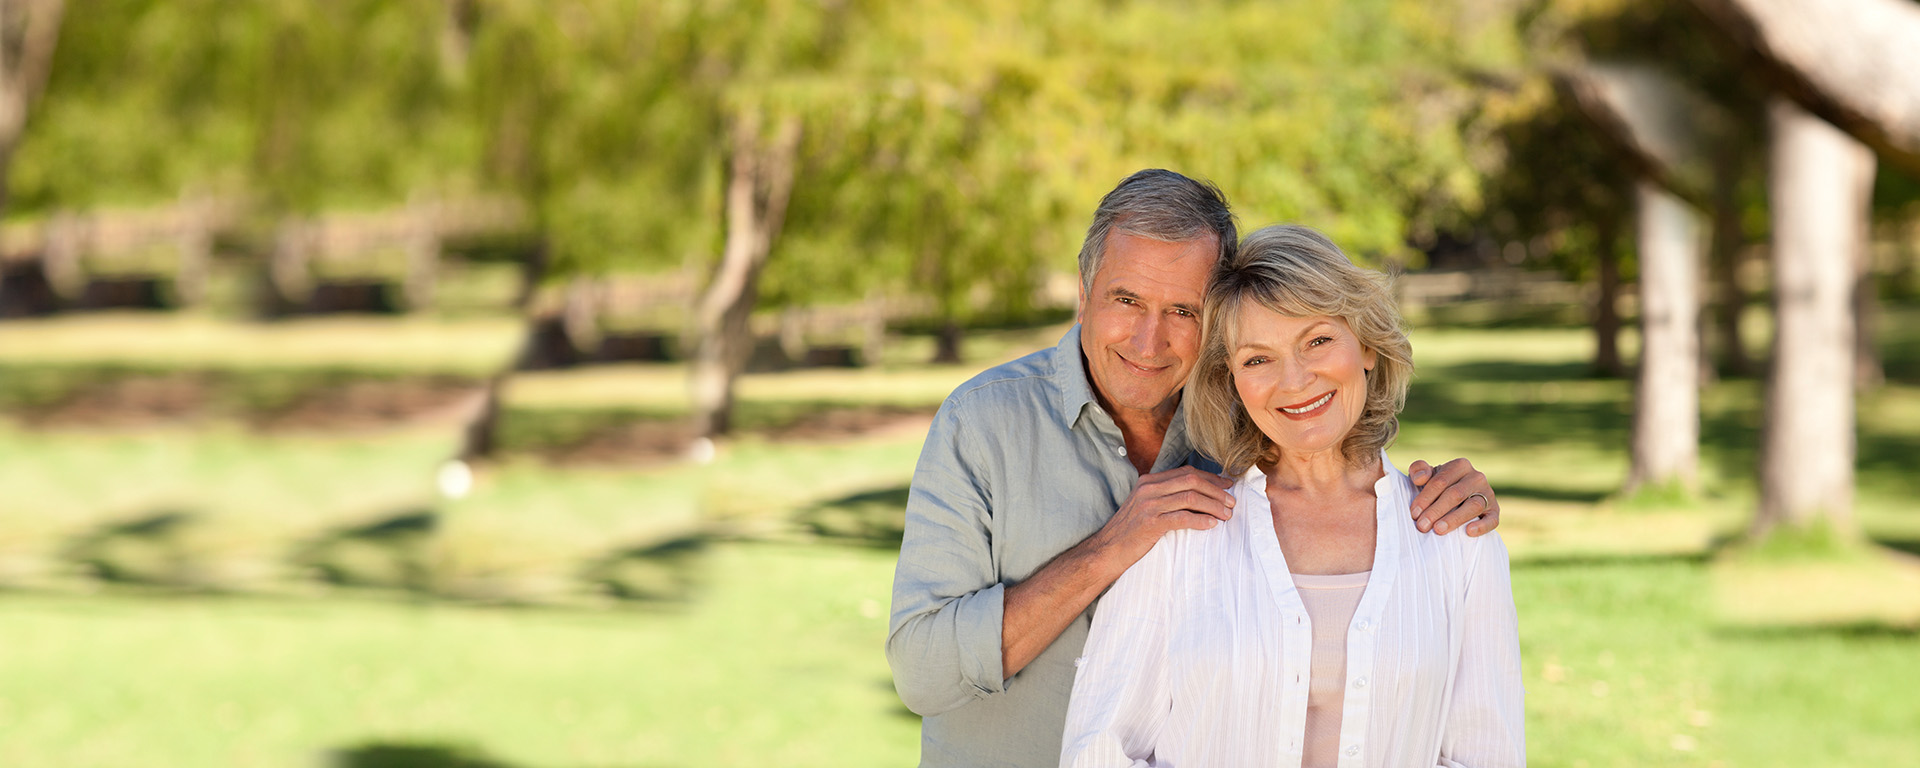 dental implants sunnybank brisbane